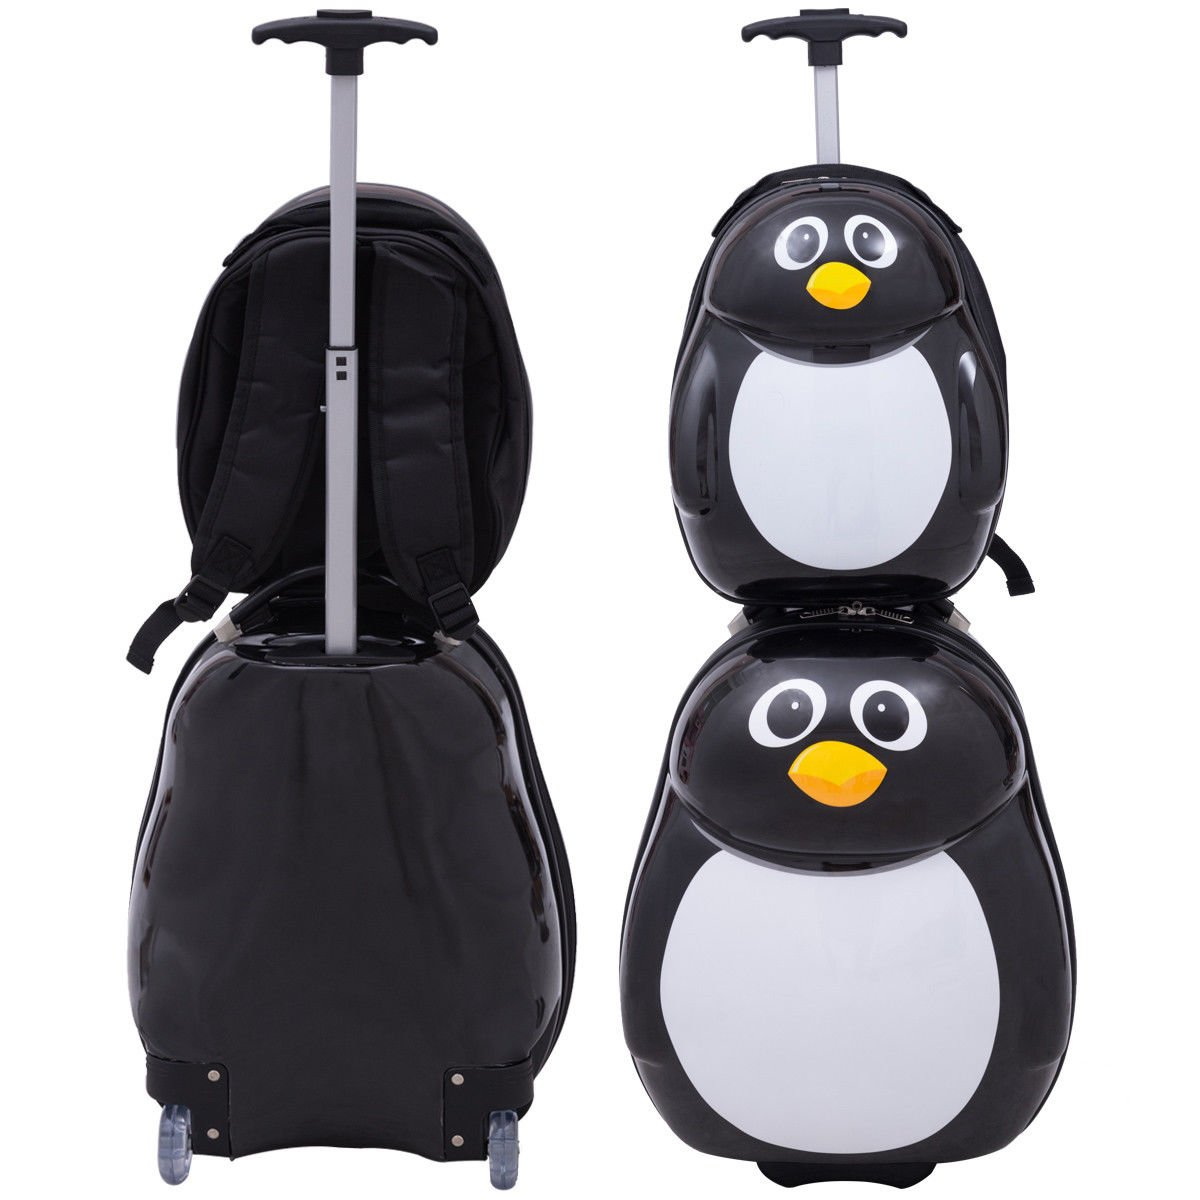 Goplus 2Pcs Kids Luggage, 19'' Carry On Luggage & 13'' Backpack, Kids Carry On Spinner Luggage Set, Rolling Trolley Suitcase for Boys and Girls Travel Suitcases (Penguin) by Goplus (Image #6)